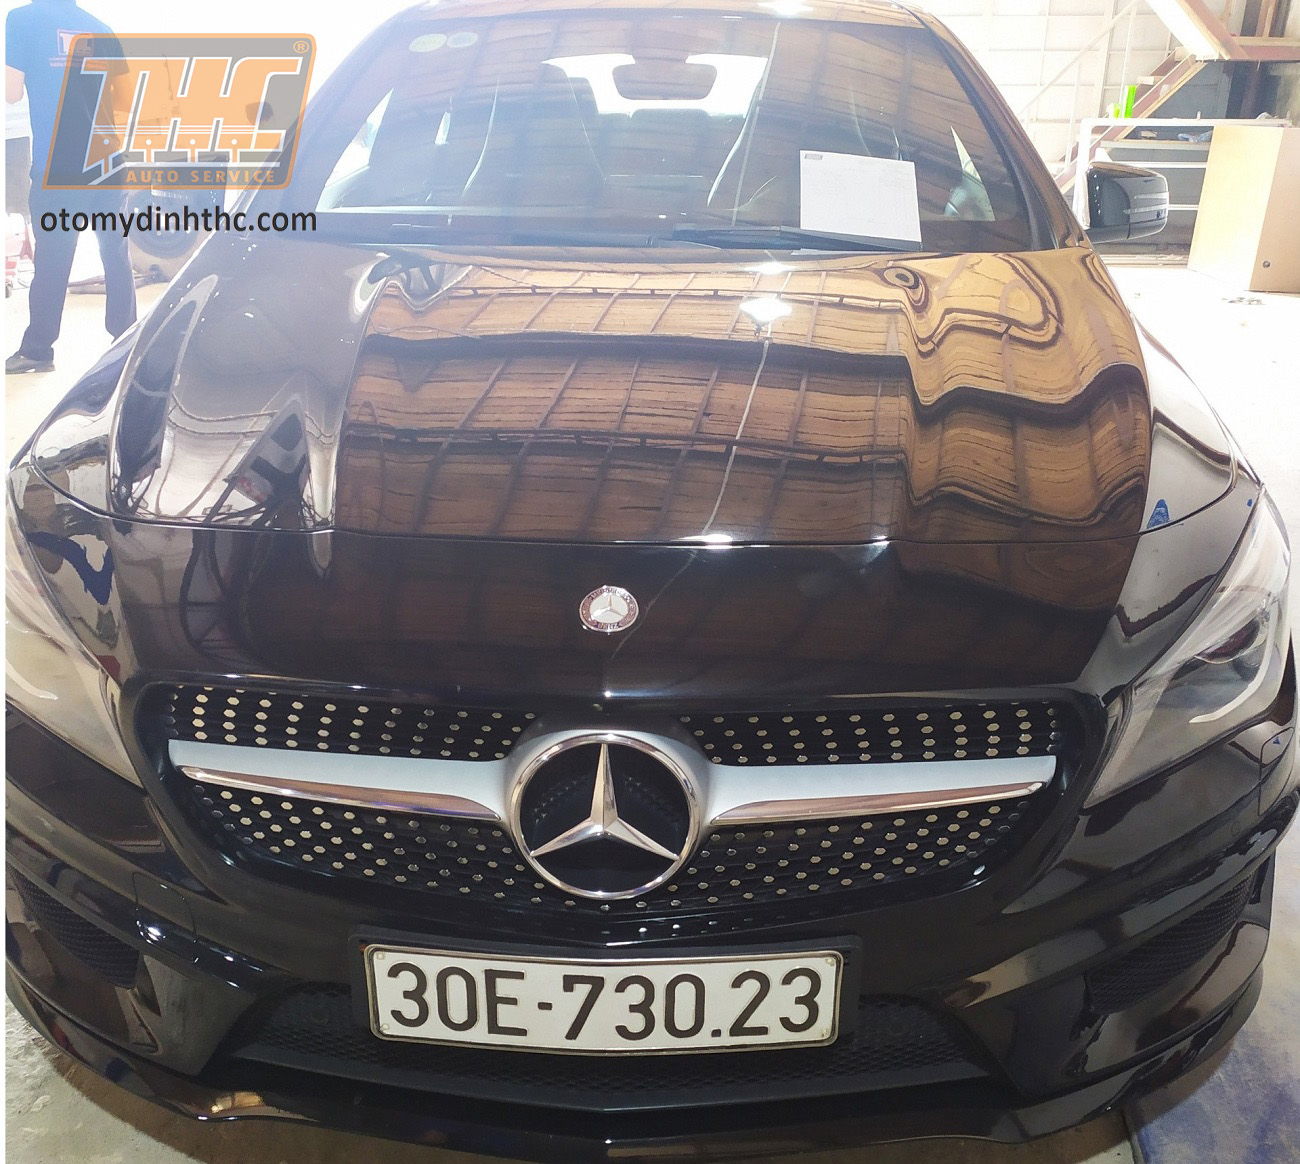 son-doi-mau-mercedes-cla250-2